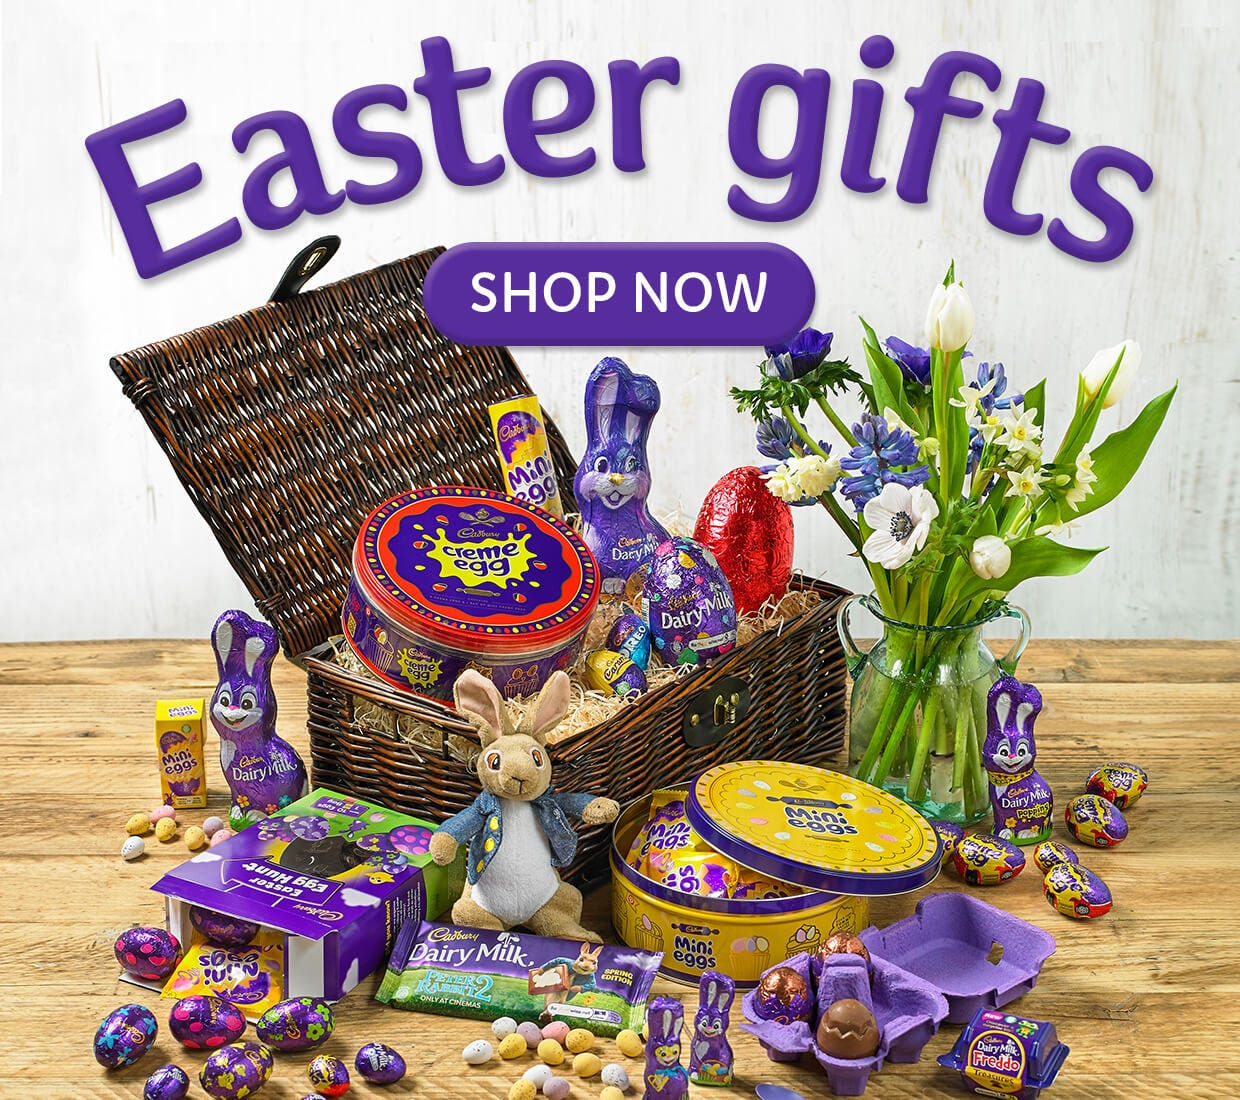 Cadbury Easter Chocolate Eggs, Easter Gifts and Baskets